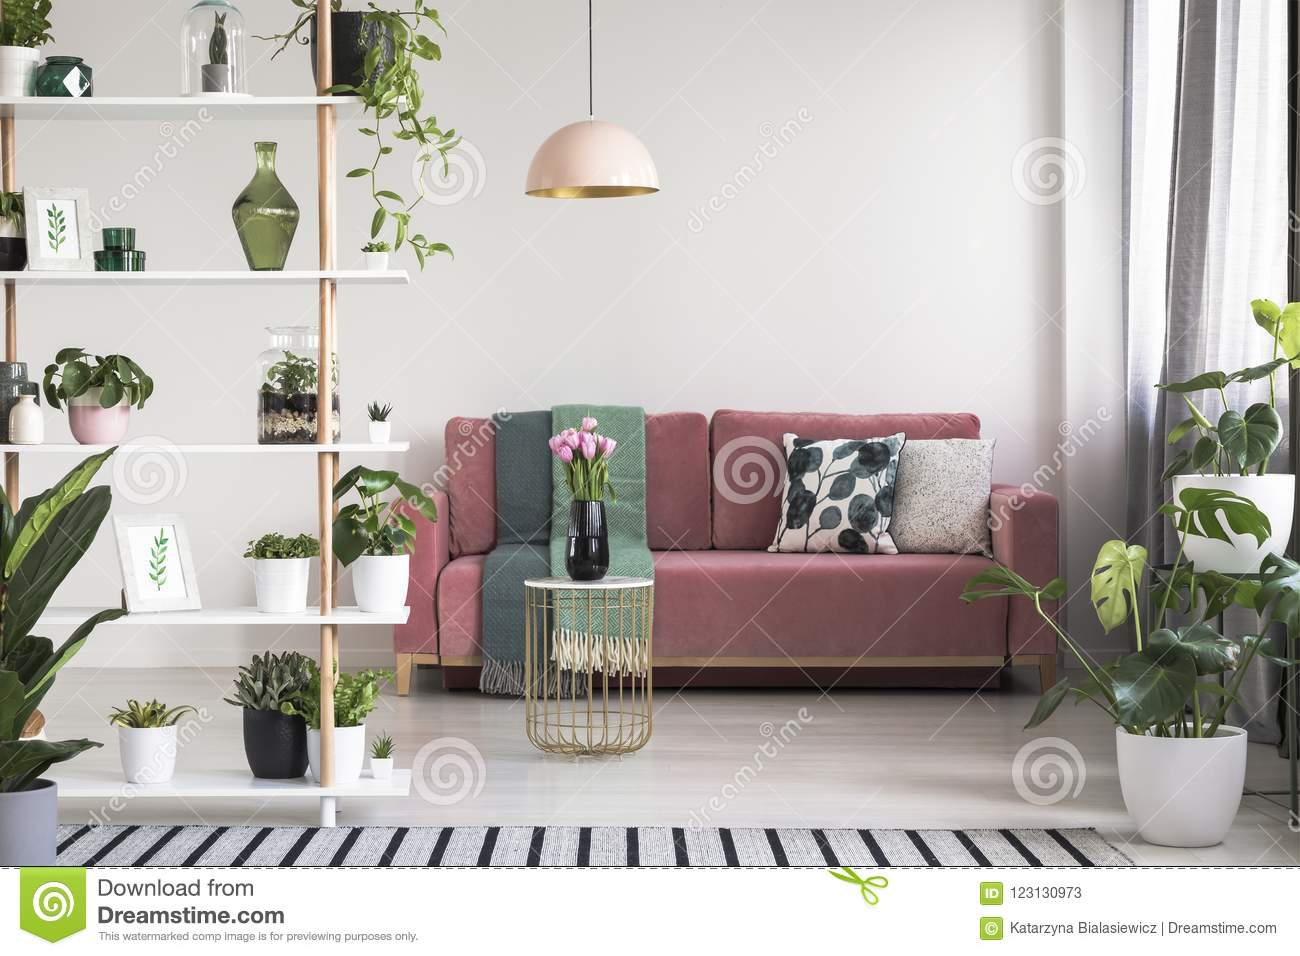 lamp above table with flowers in front of red sofa in